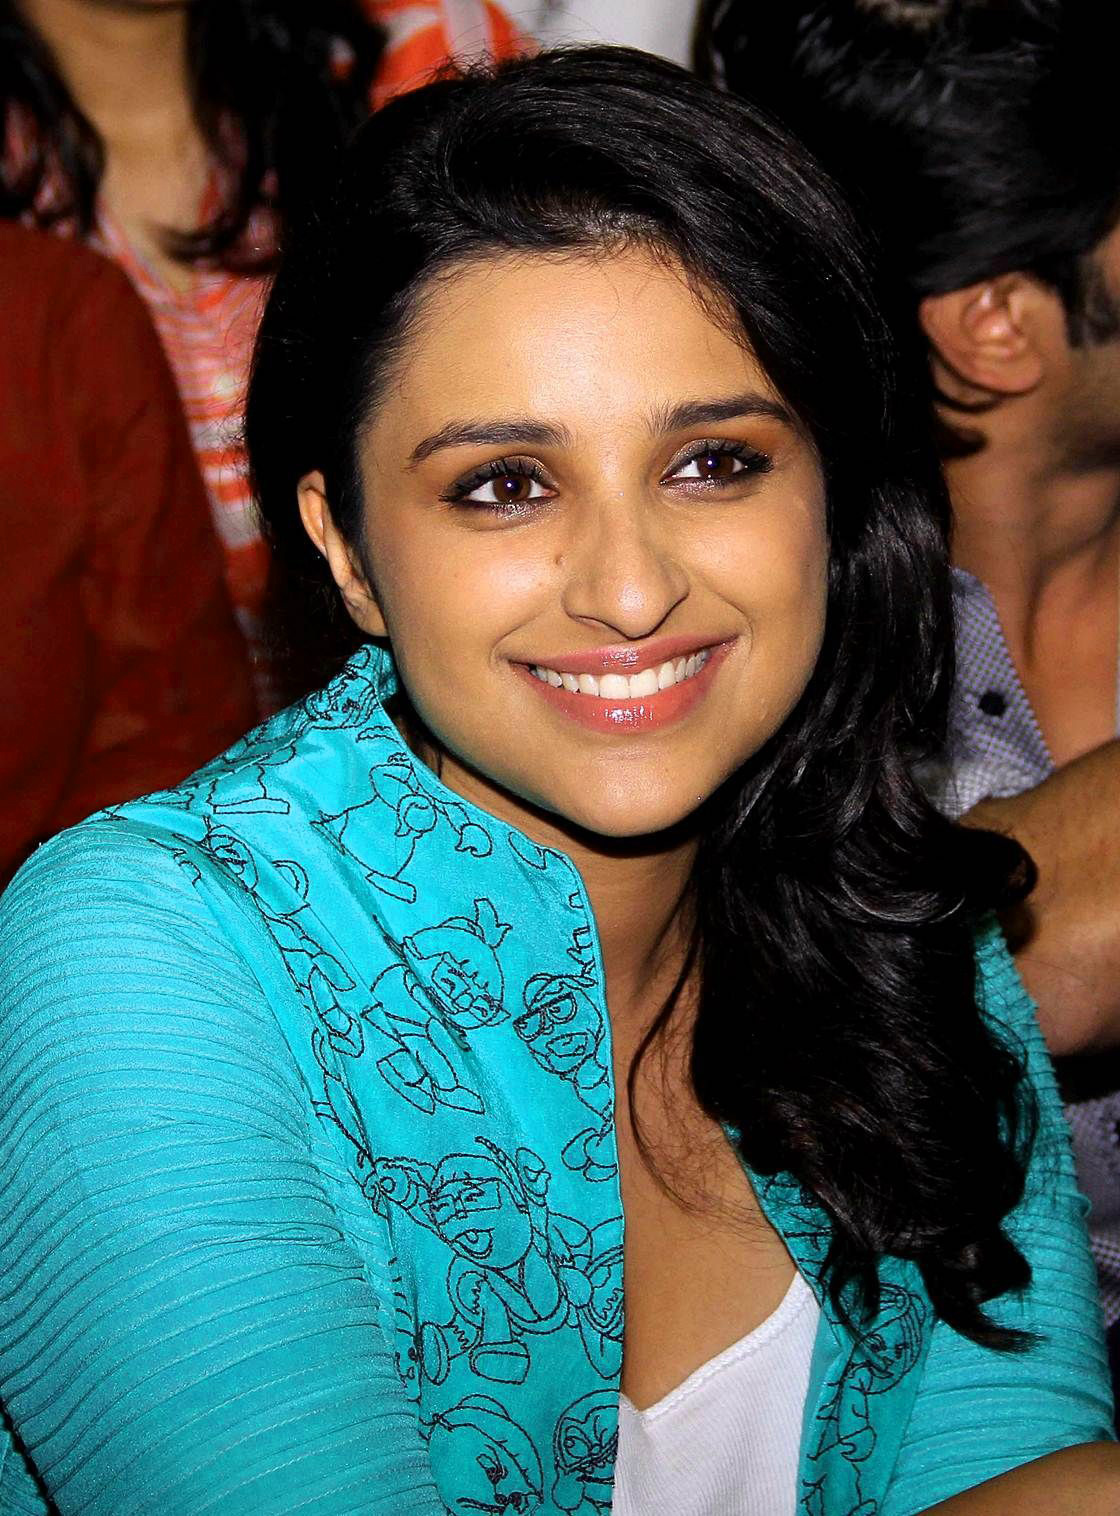 PARINEETI CHOPRA IMAGES PHOTO WALLPAPER FREE HD